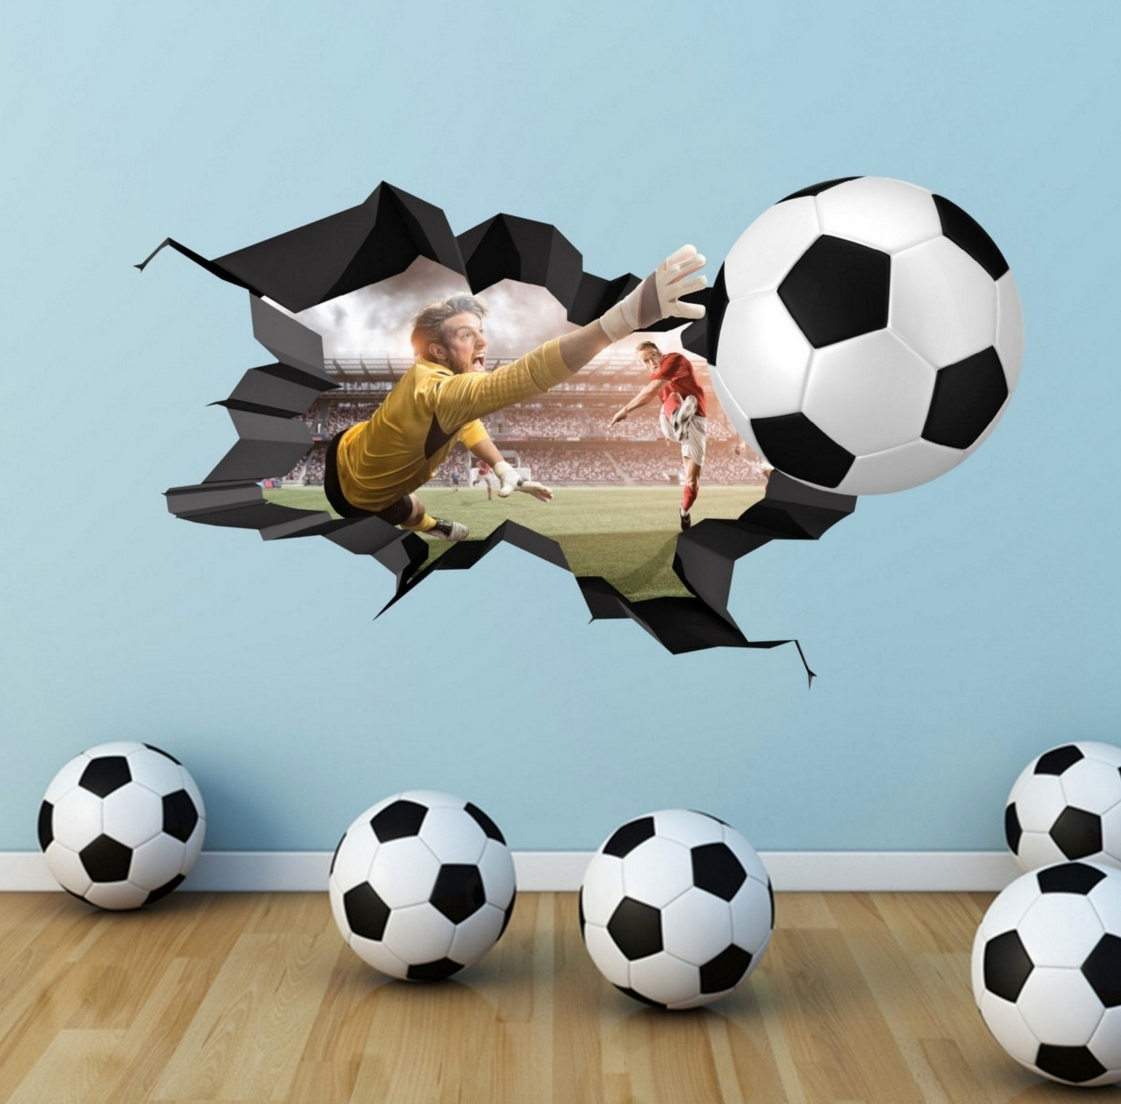 Unique Soccer Ball Wall Decor Gallery | Wall Decoration 2018 Intended For 2018 Soccer Wall Art (View 20 of 20)